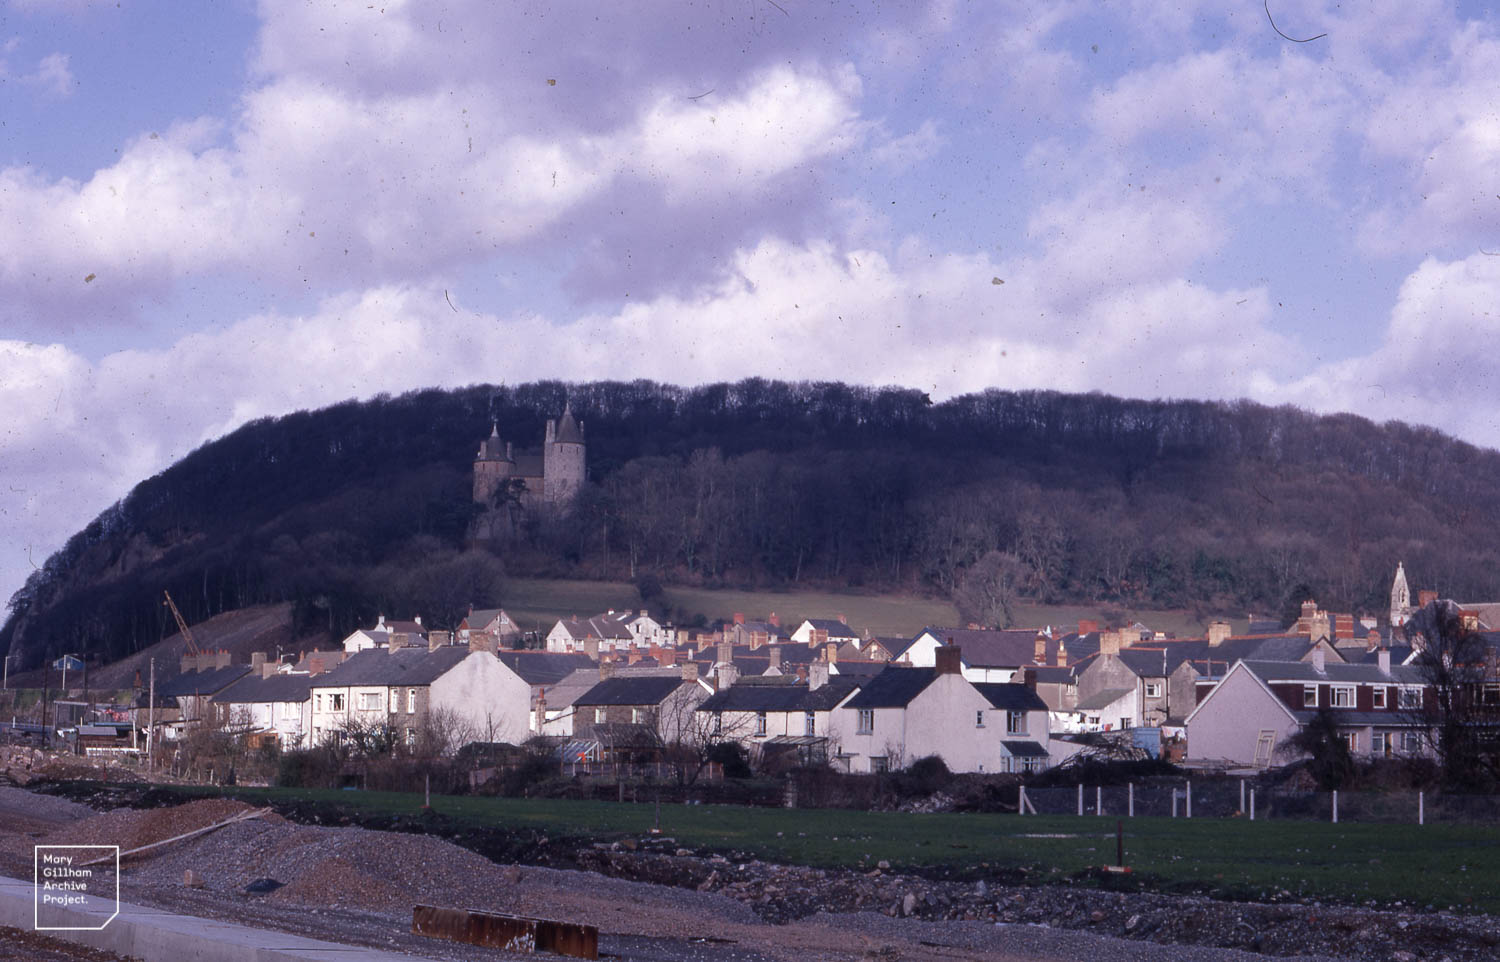 Photo of Tongwynlais from 1971